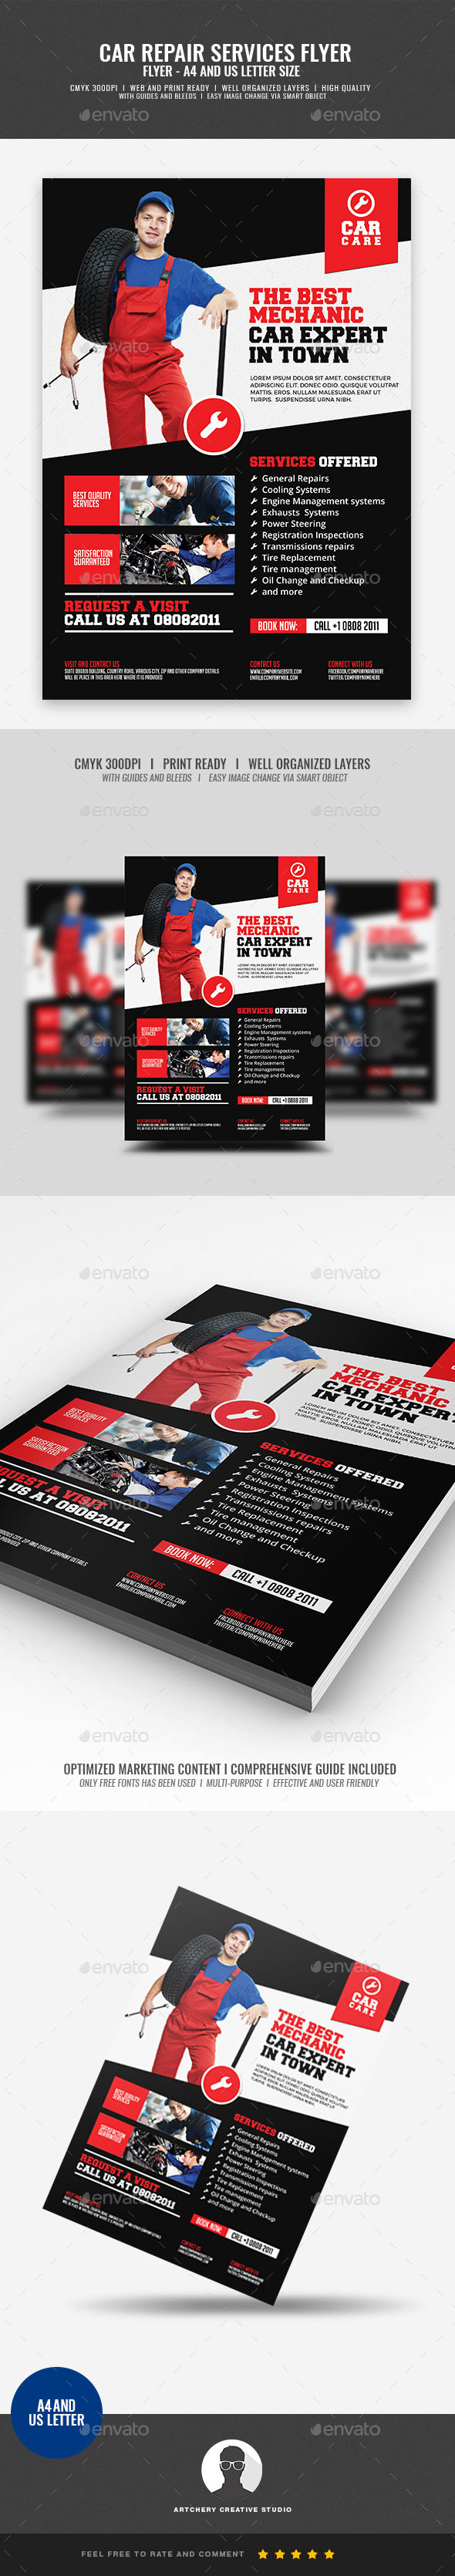 Car Mechanic Promotional Flyer - Corporate Flyers